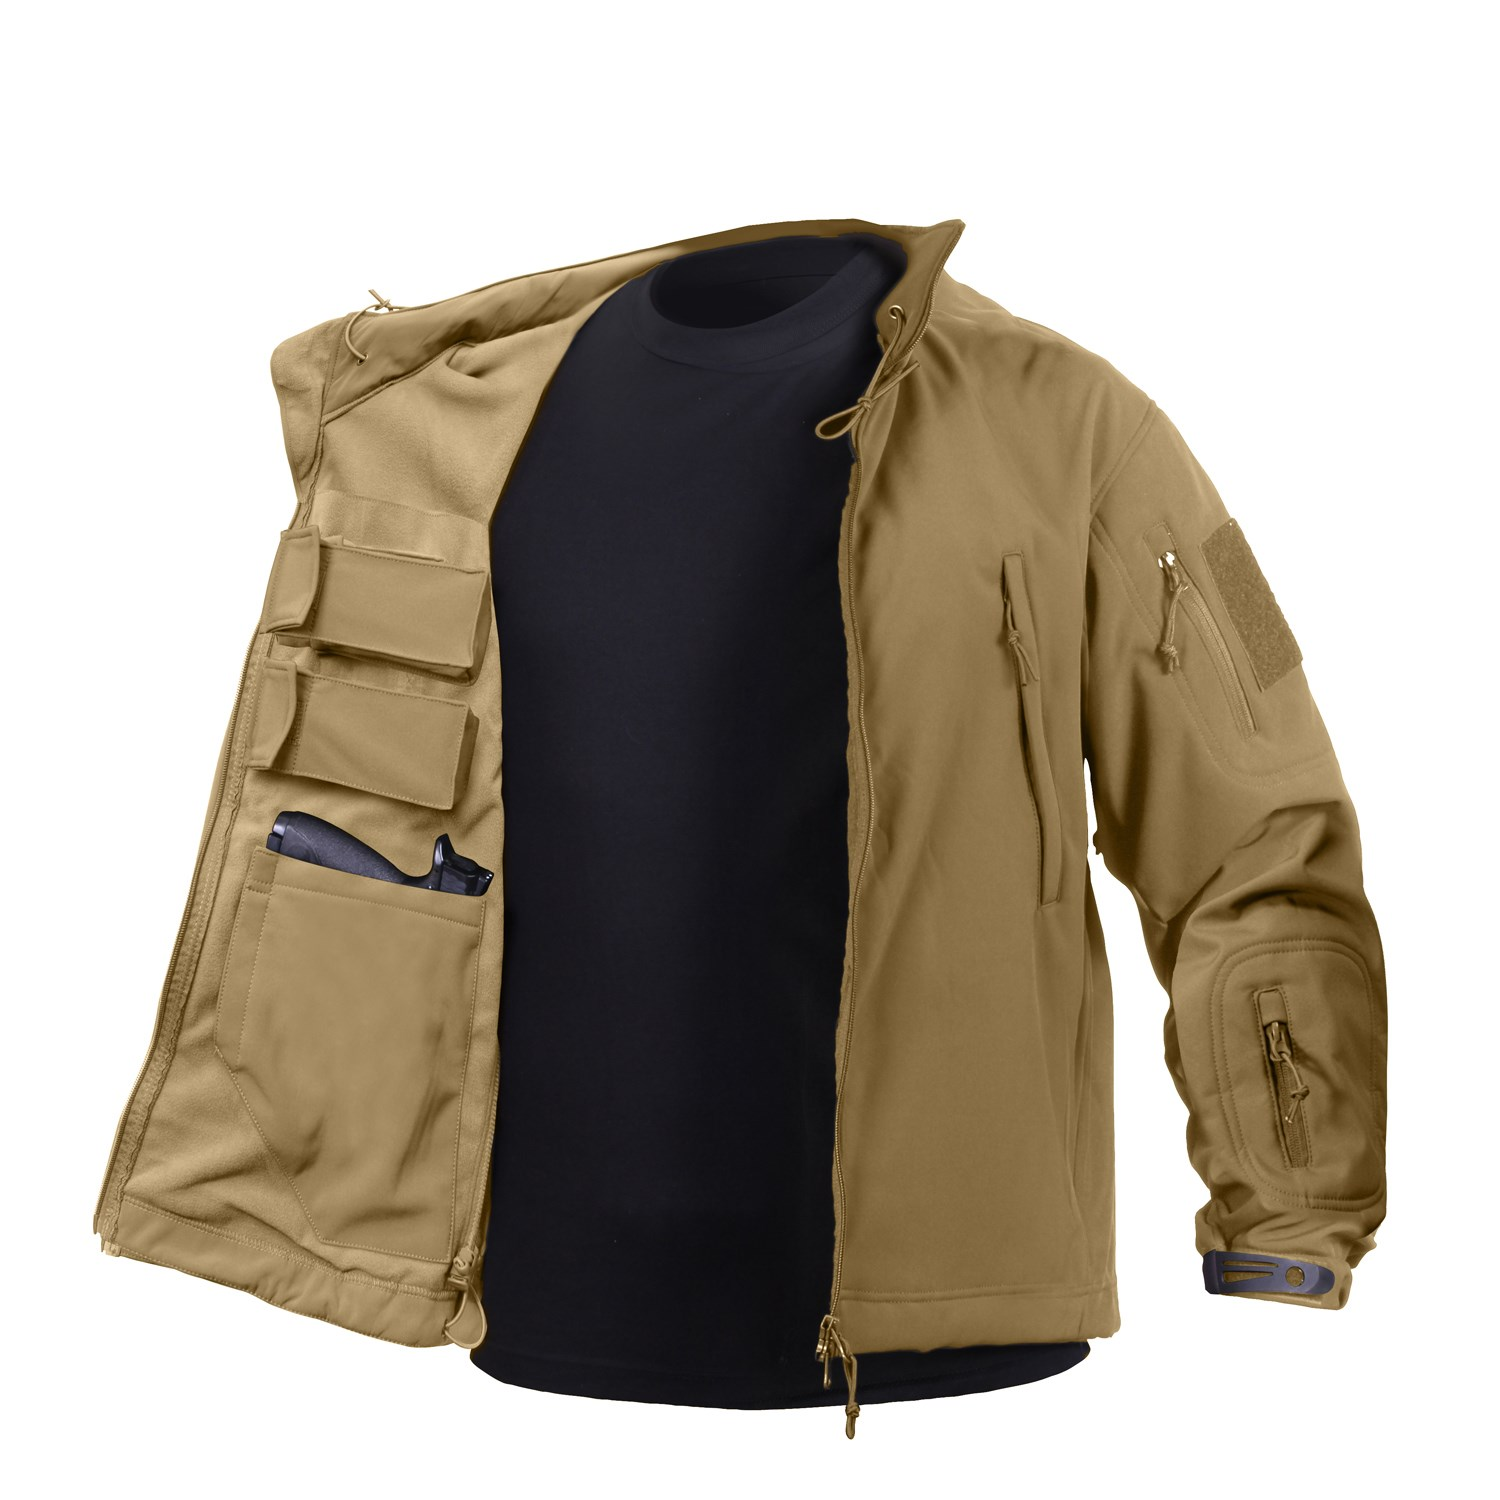 Bunda CONCEALED CARRY softshell COYOTE BROWN ROTHCO 55485 L-11